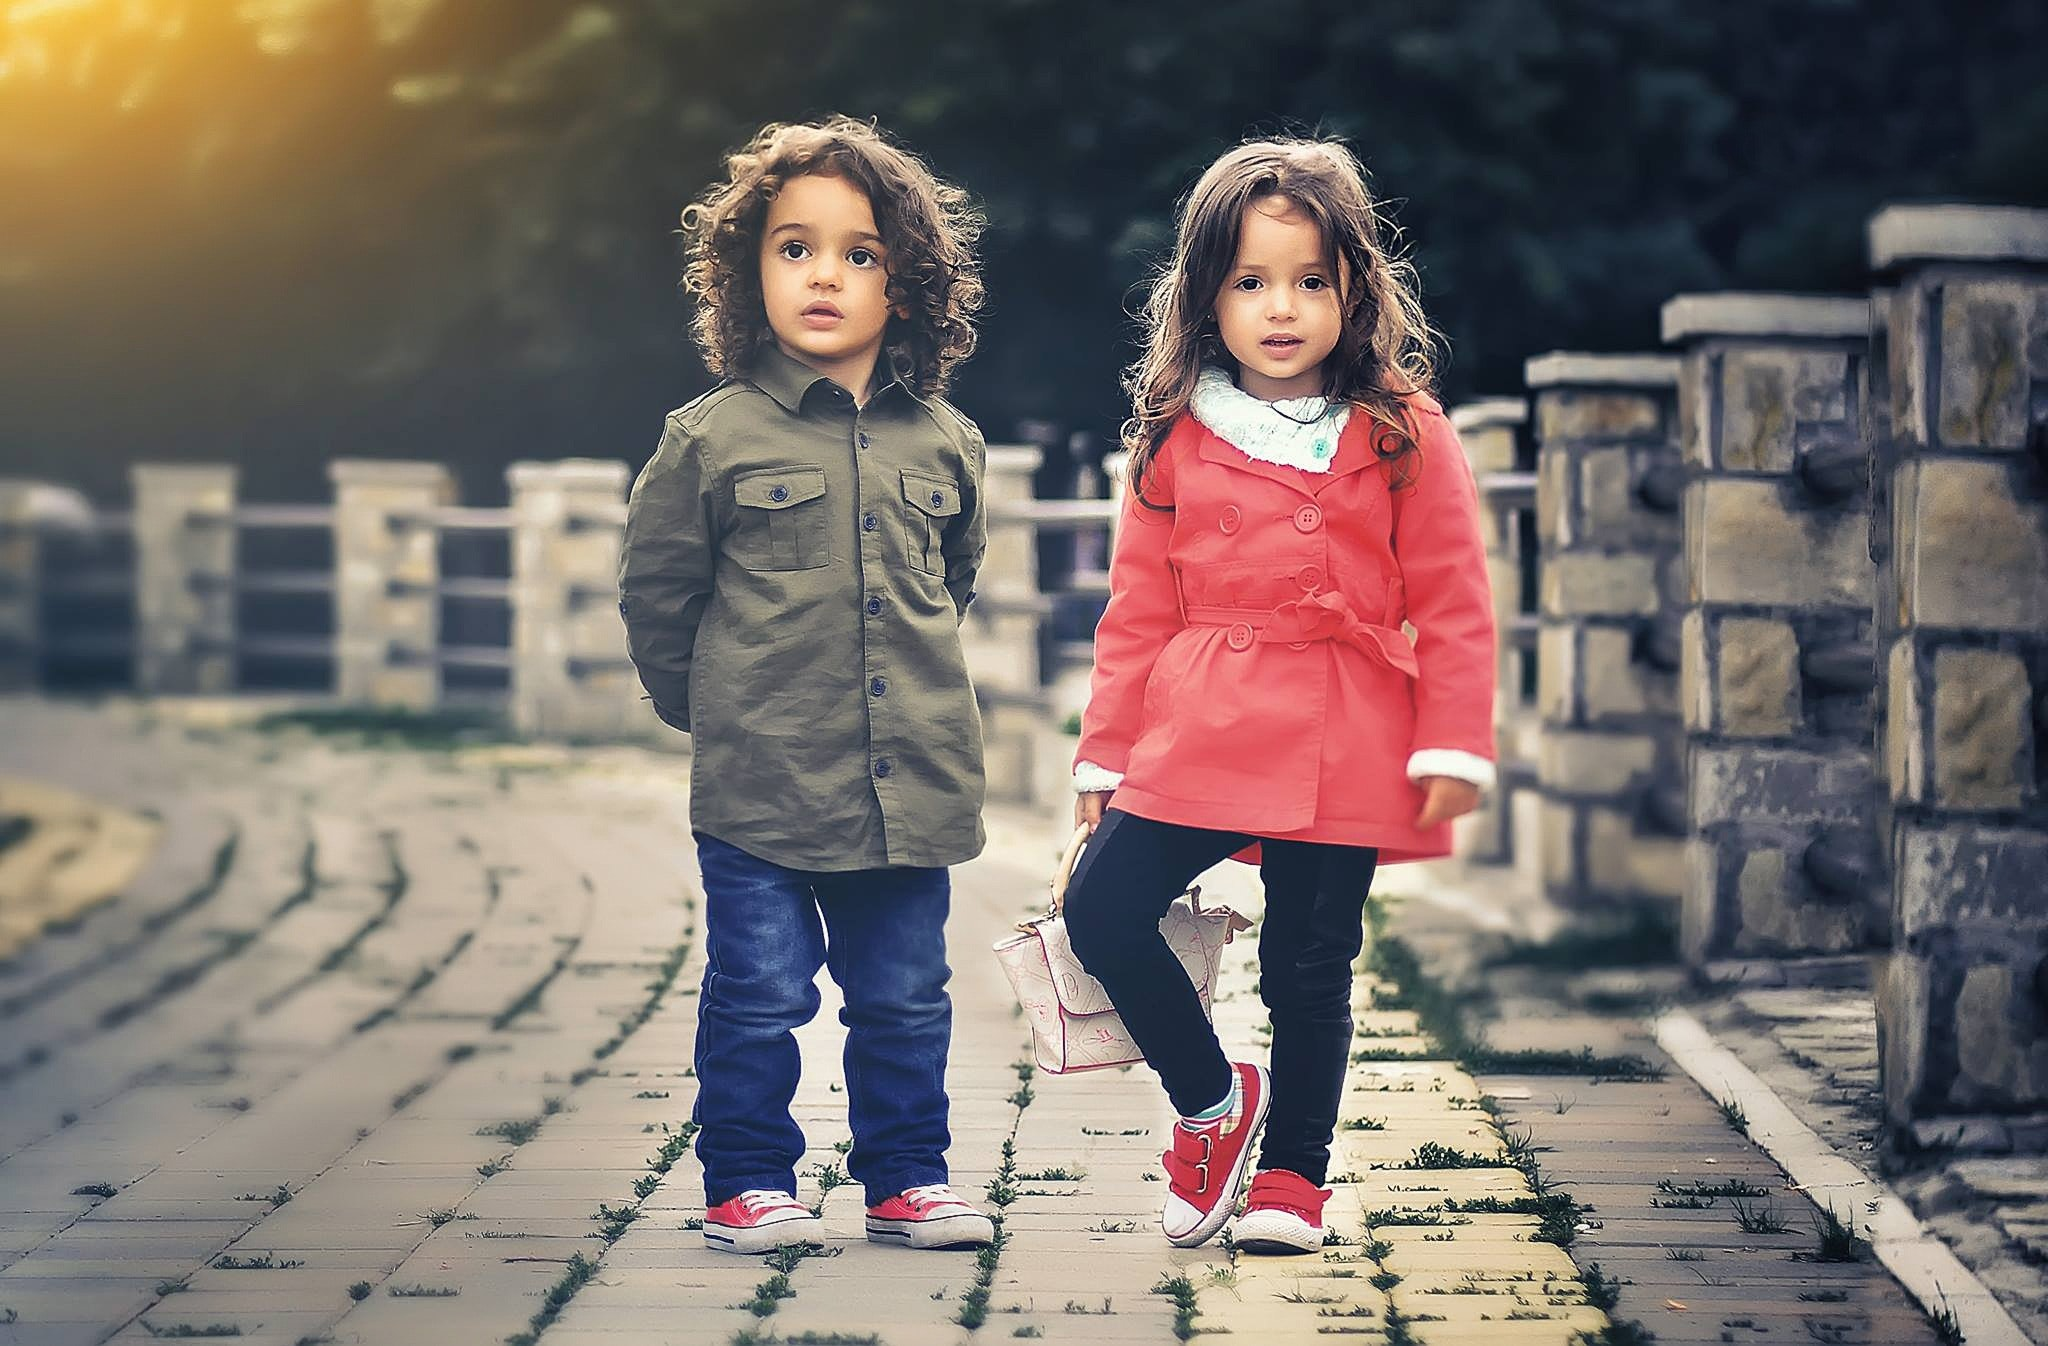 Childrens photos images 43